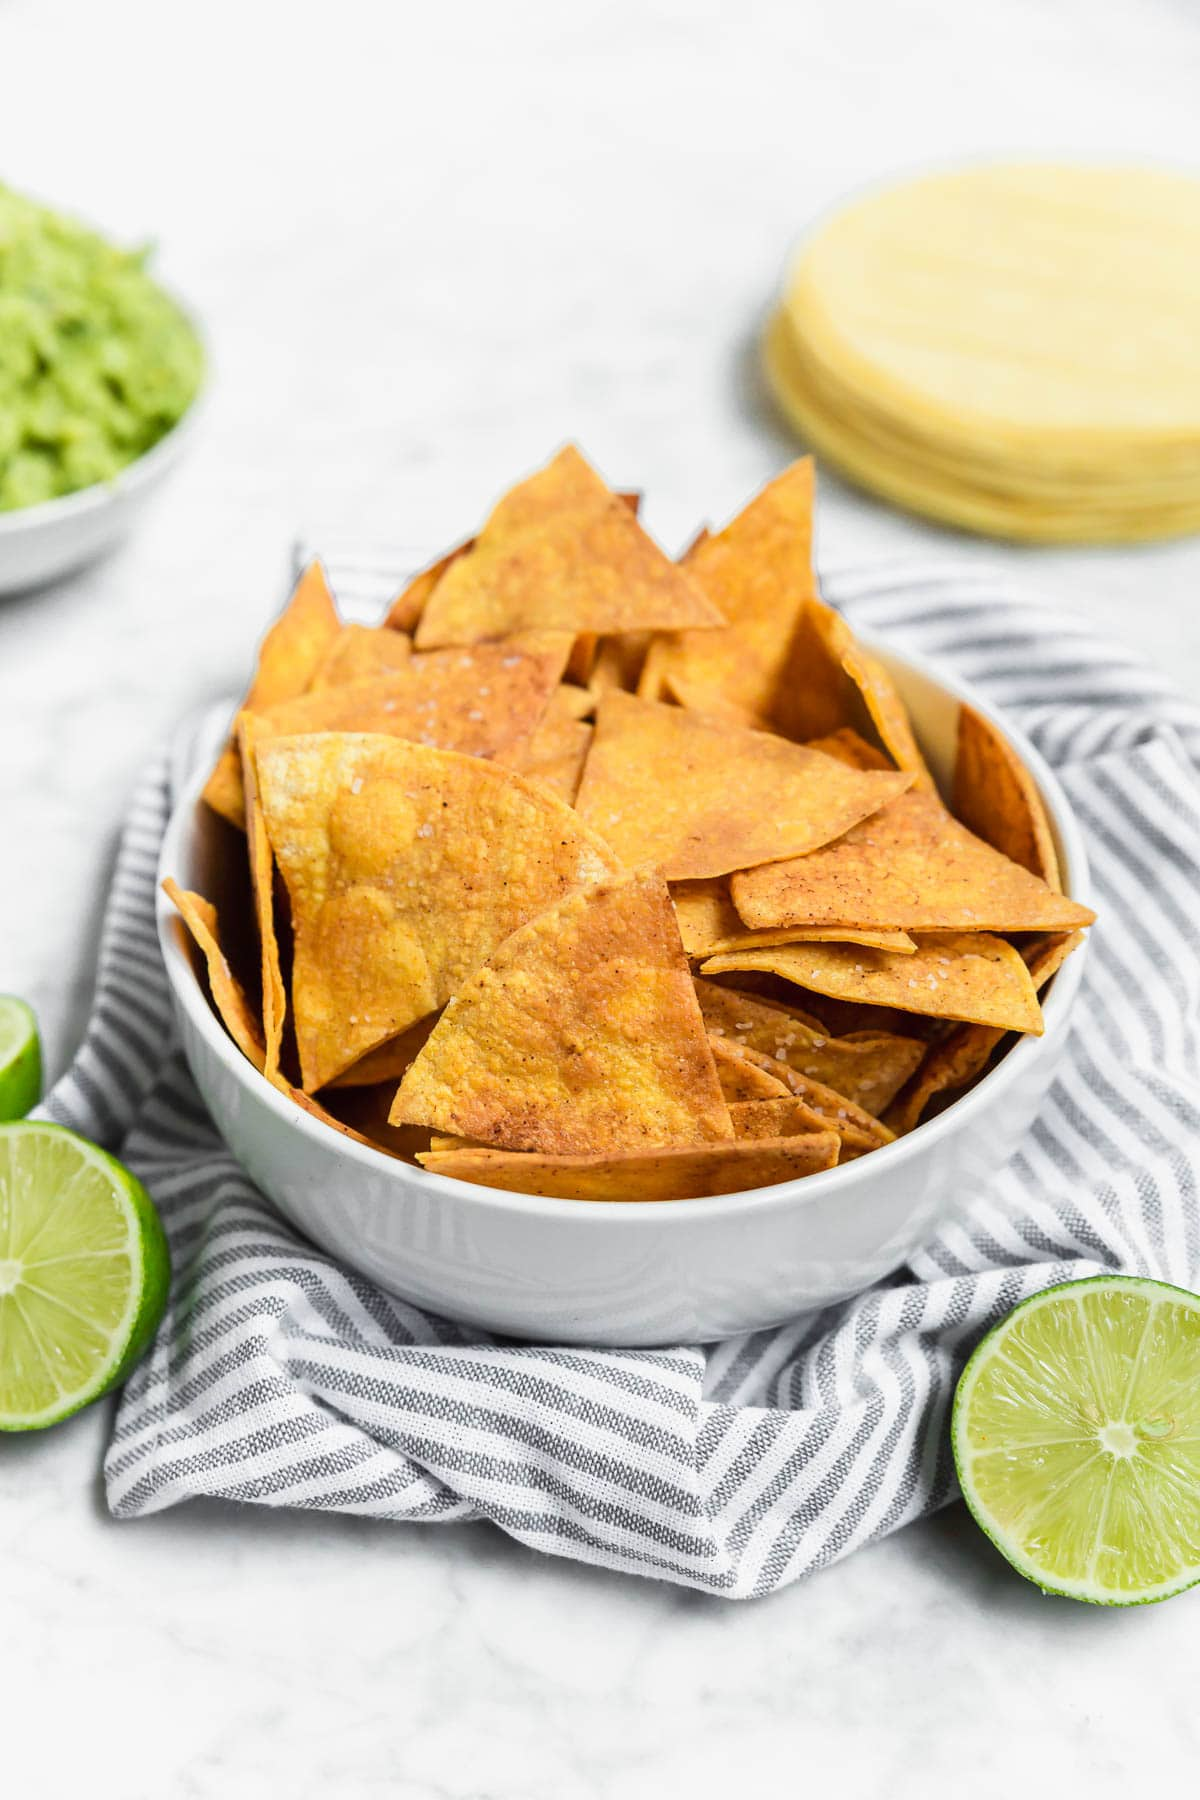 Baked Chili Lime Tortilla Chips - Gluten-Free, Dairy-Free, Vegan